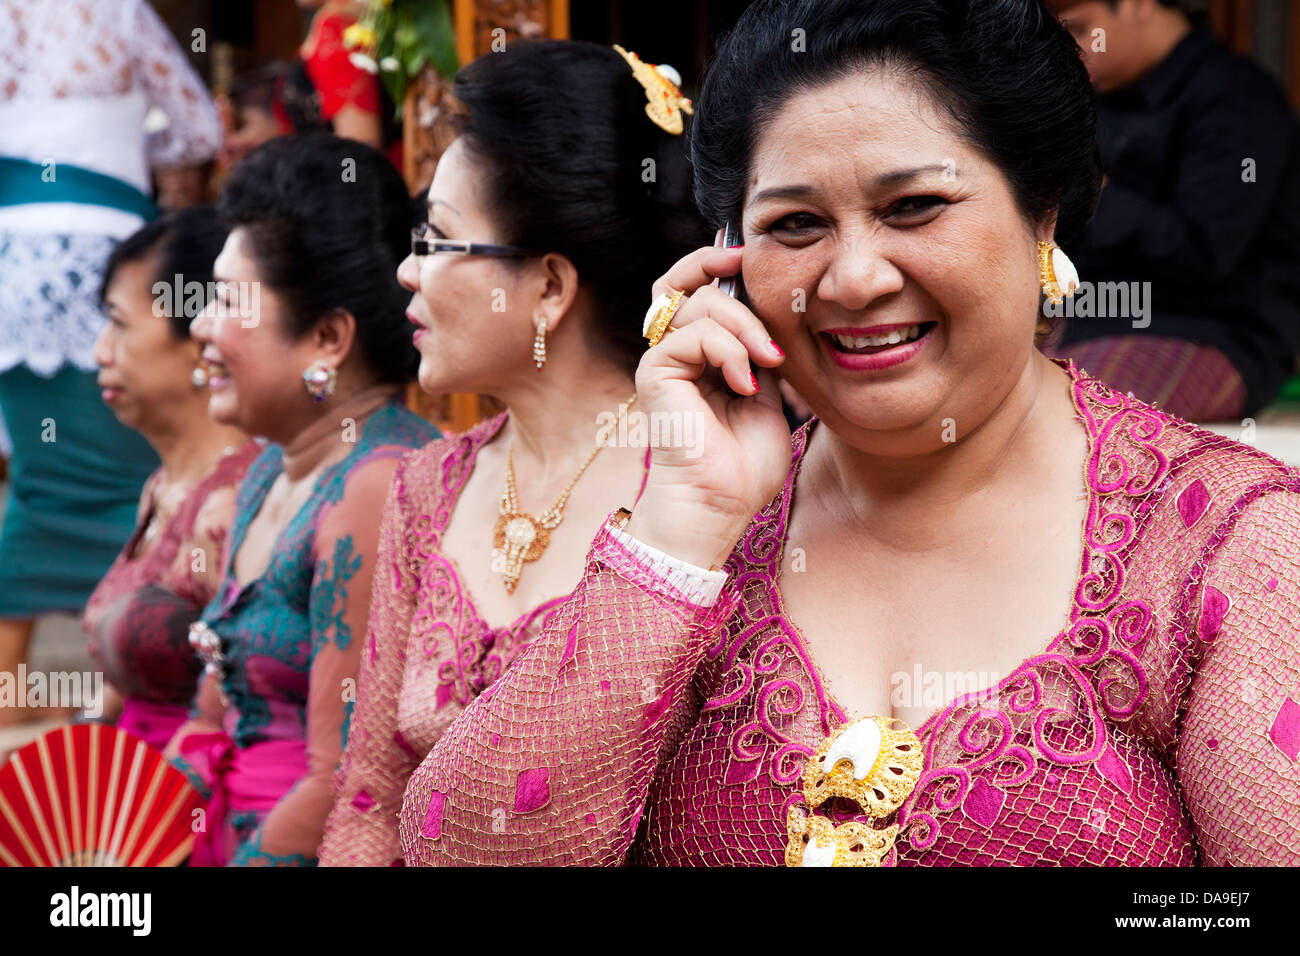 Balinese Woman With Cell Phone Stock Photos & Balinese Woman With ...